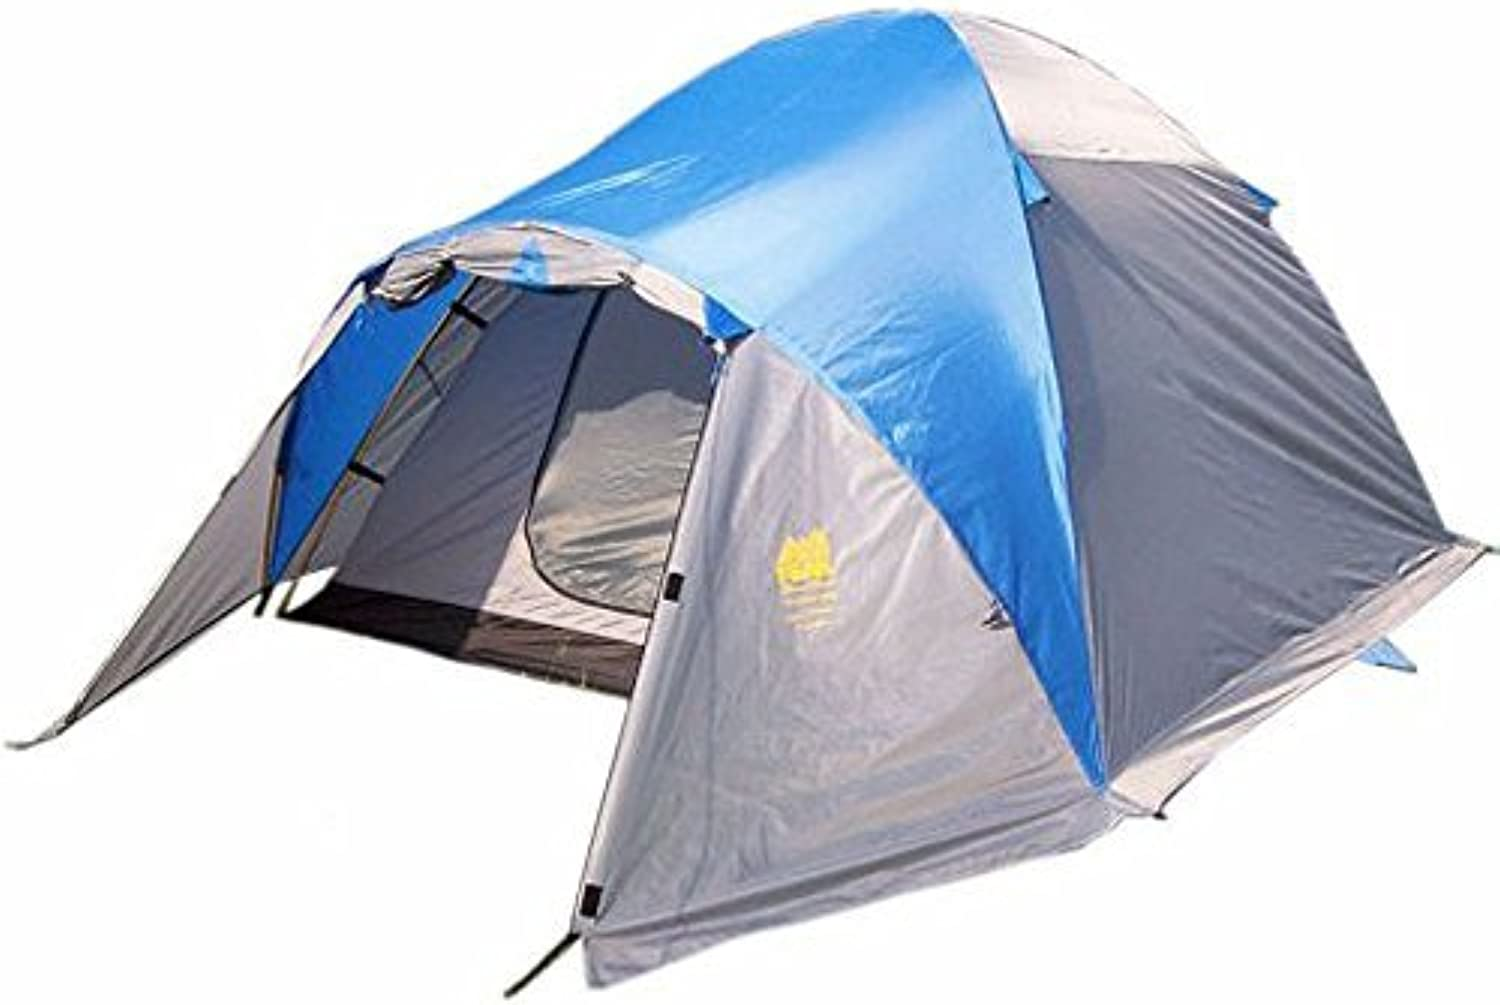 High Peak Outdoors South Col Tent by High Peak Outdoors